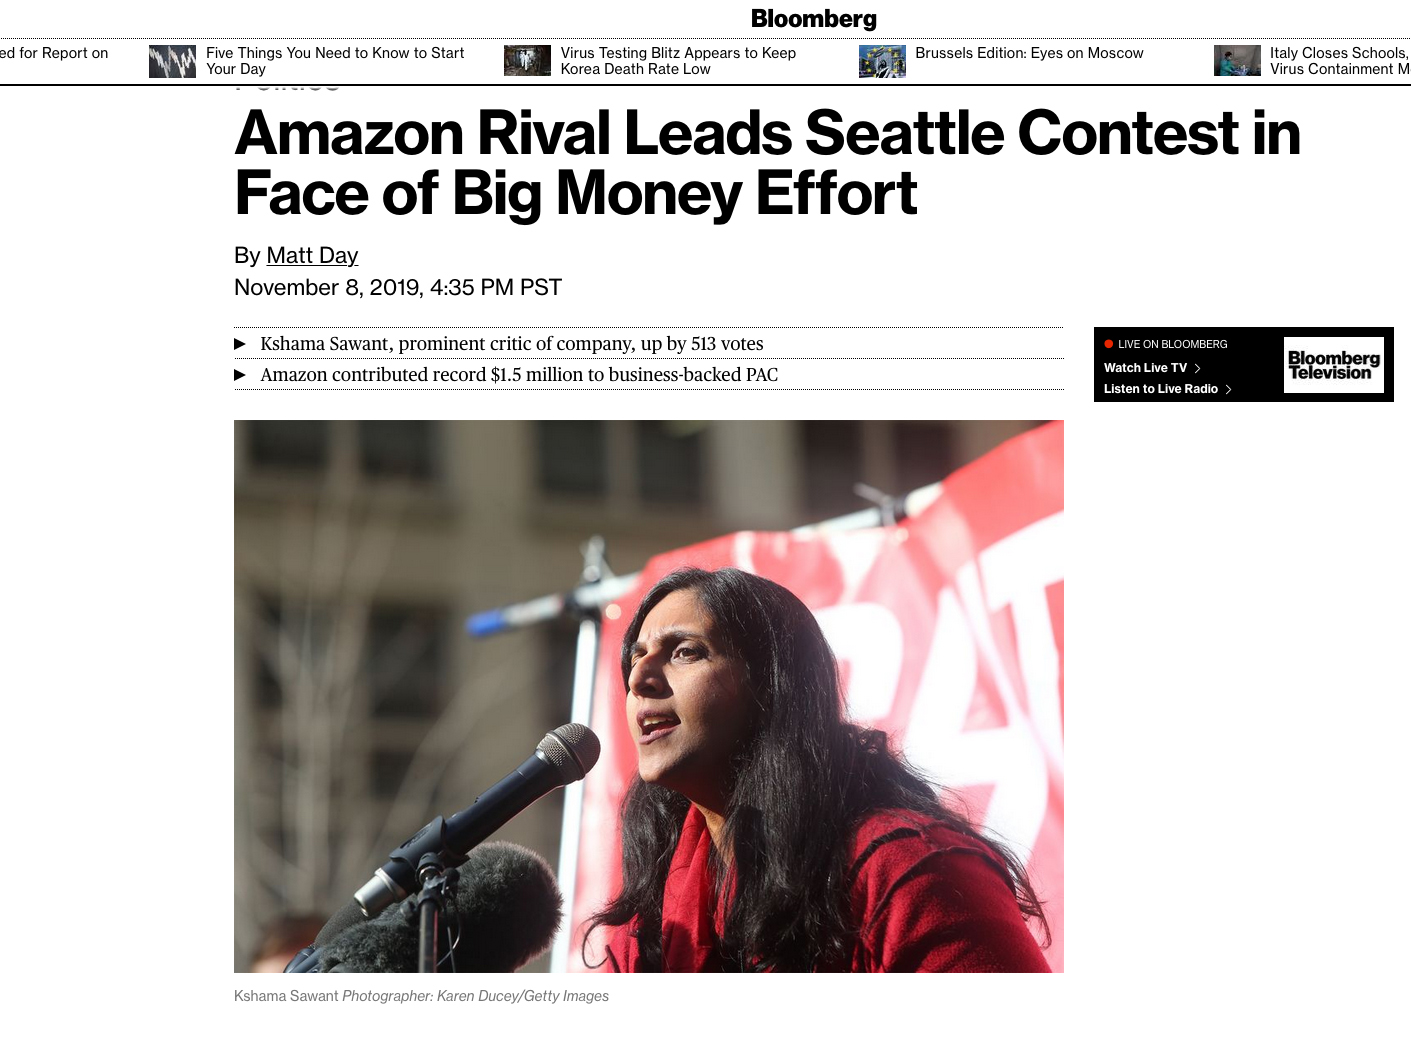 {quote}Amazon Rival Leads Seattle Contest in Face of Big Money Effort{quote} Photos for Getty Images. Published by Bloomberg, November 8, 2019